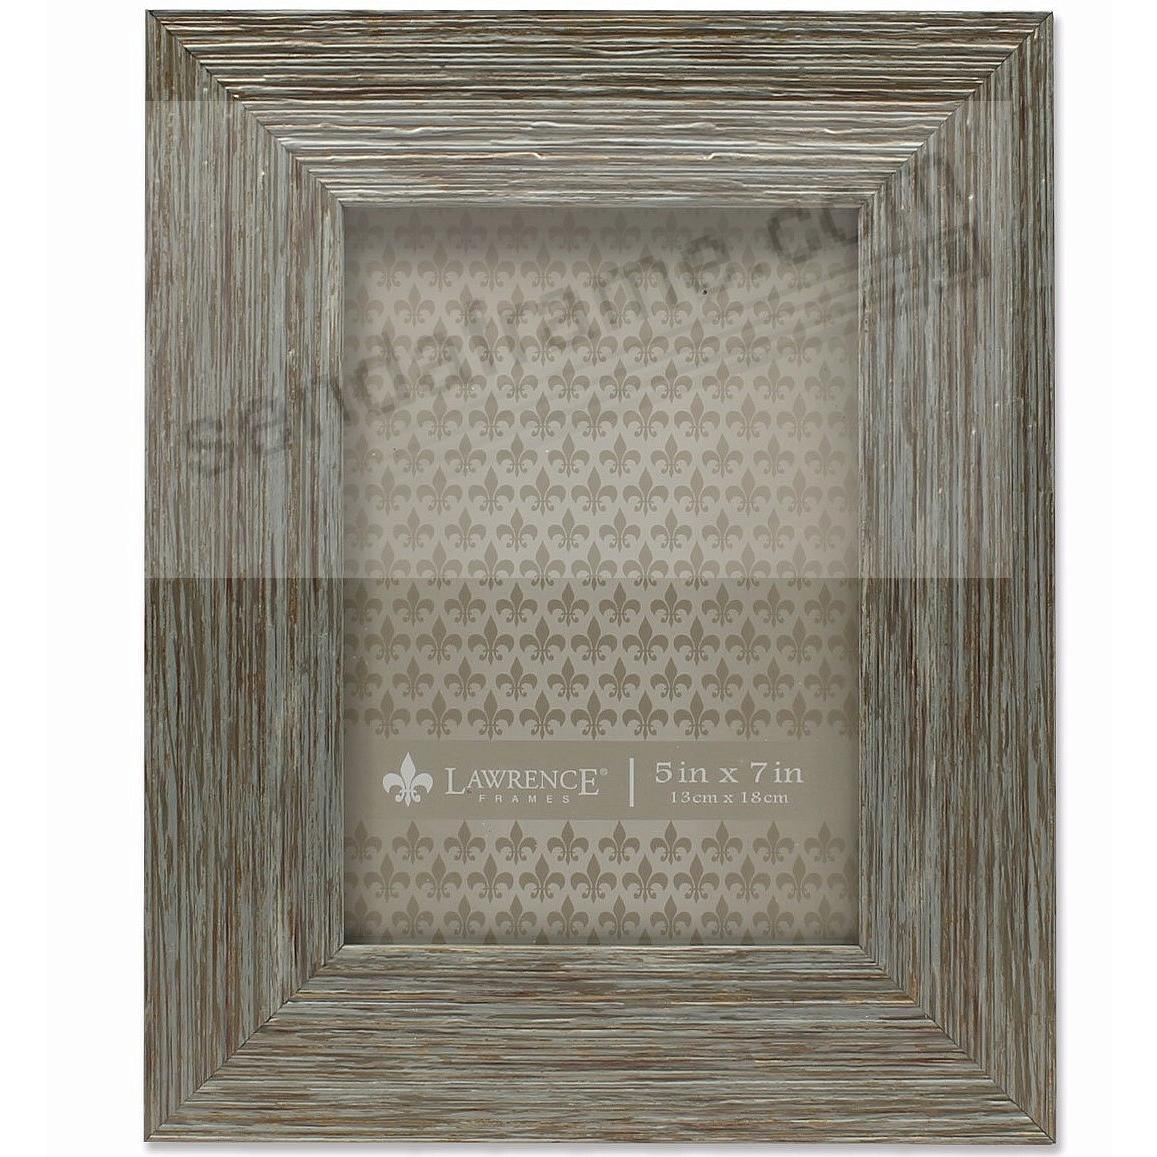 Weathered bluegrey wood 5x7 frame by lawrence picture frames weathered bluegrey wood 5x7 frame by lawrence jeuxipadfo Choice Image